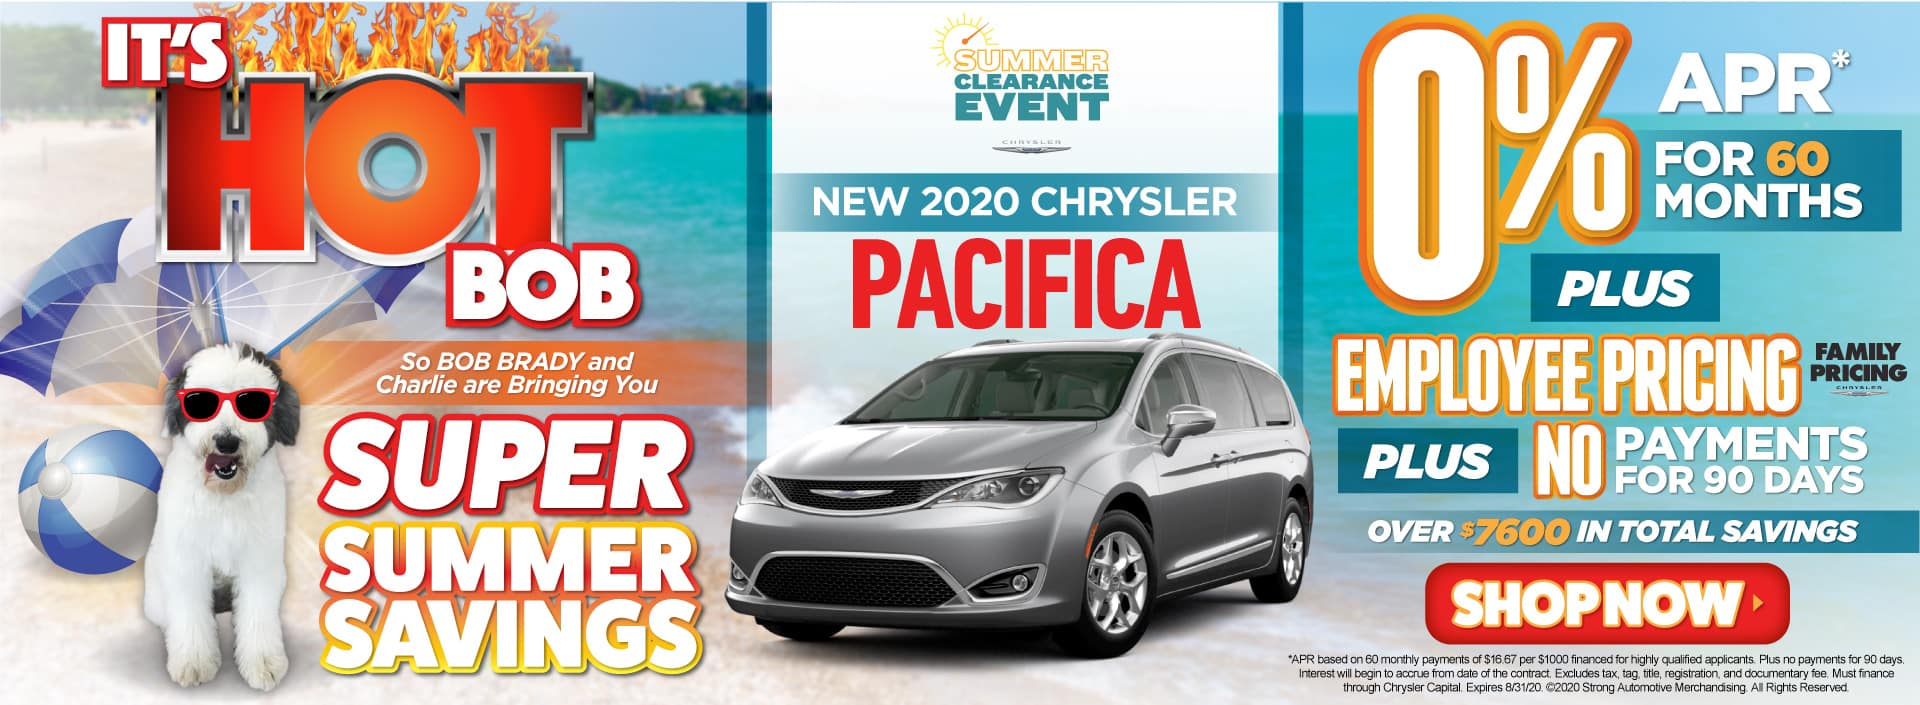 New 2020 Chrysler Pacifica - 0% for 60 months - Act Now